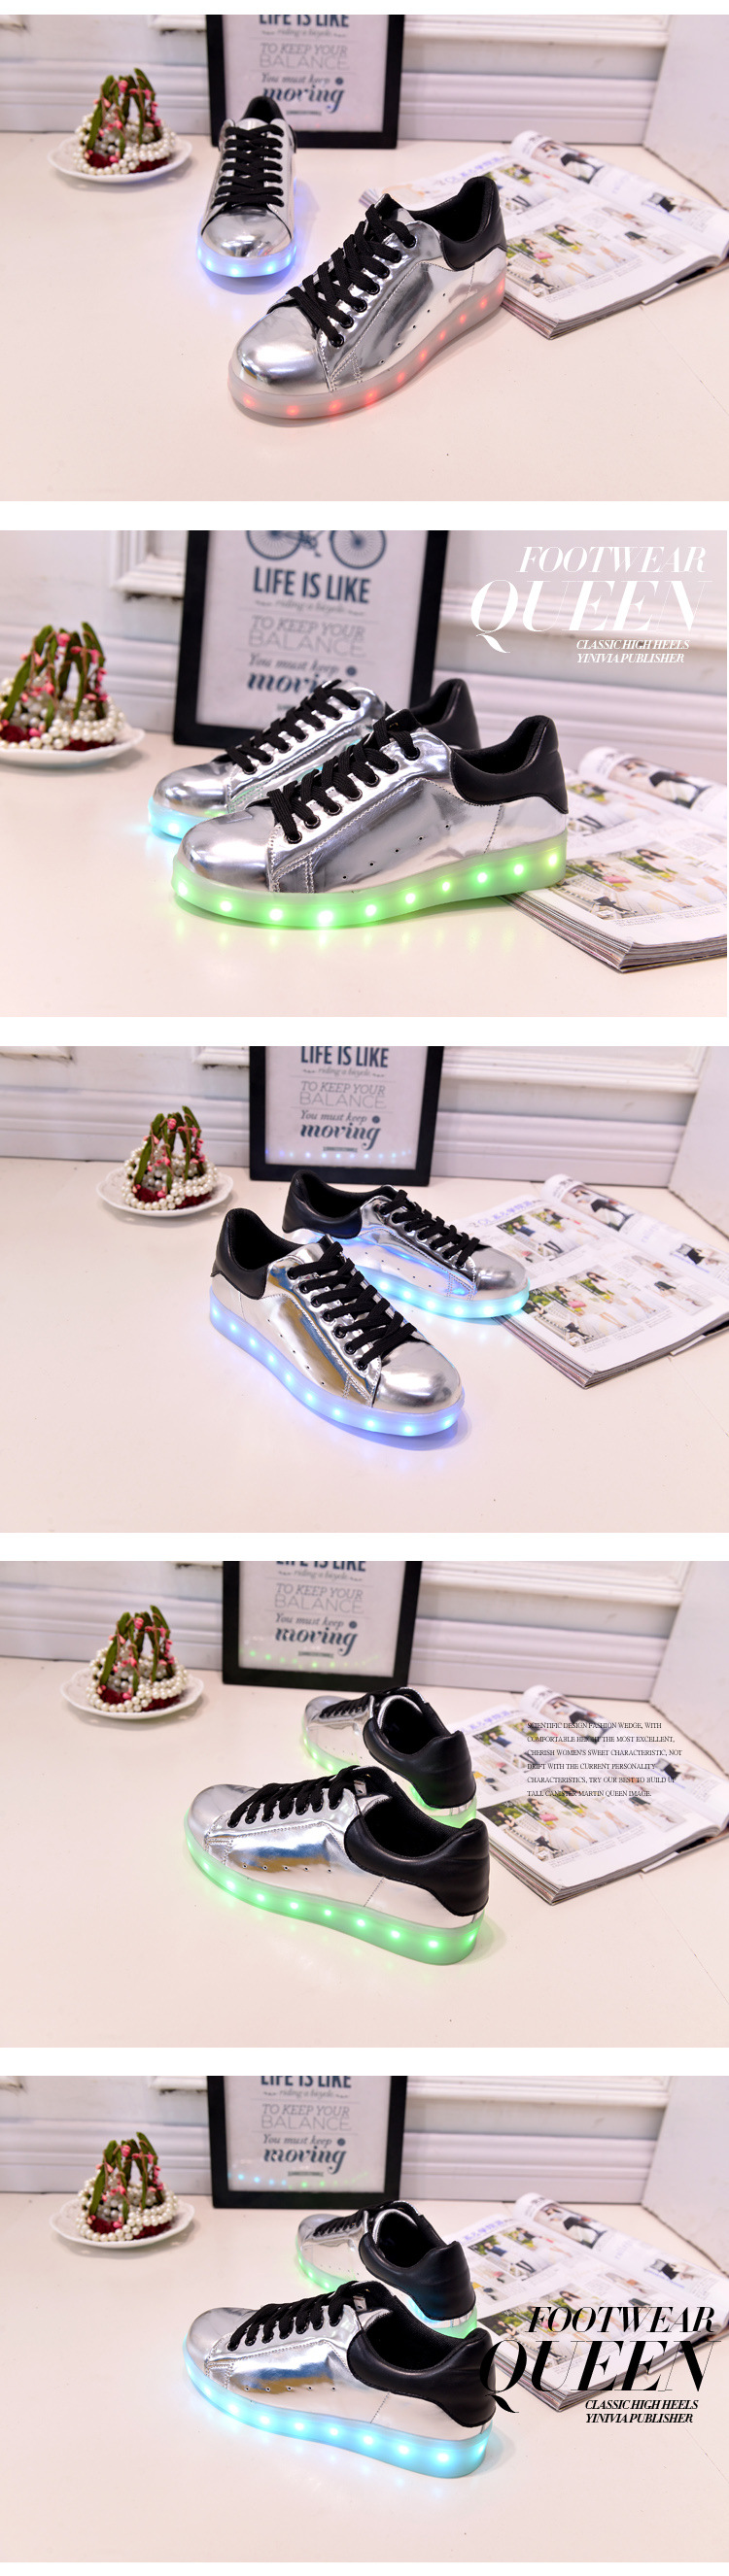 17 Baby Girls Boys LED Light Sneakers Colorful USB Charging for Kids Flashing Casual Flat students children Luminous Shoes 7